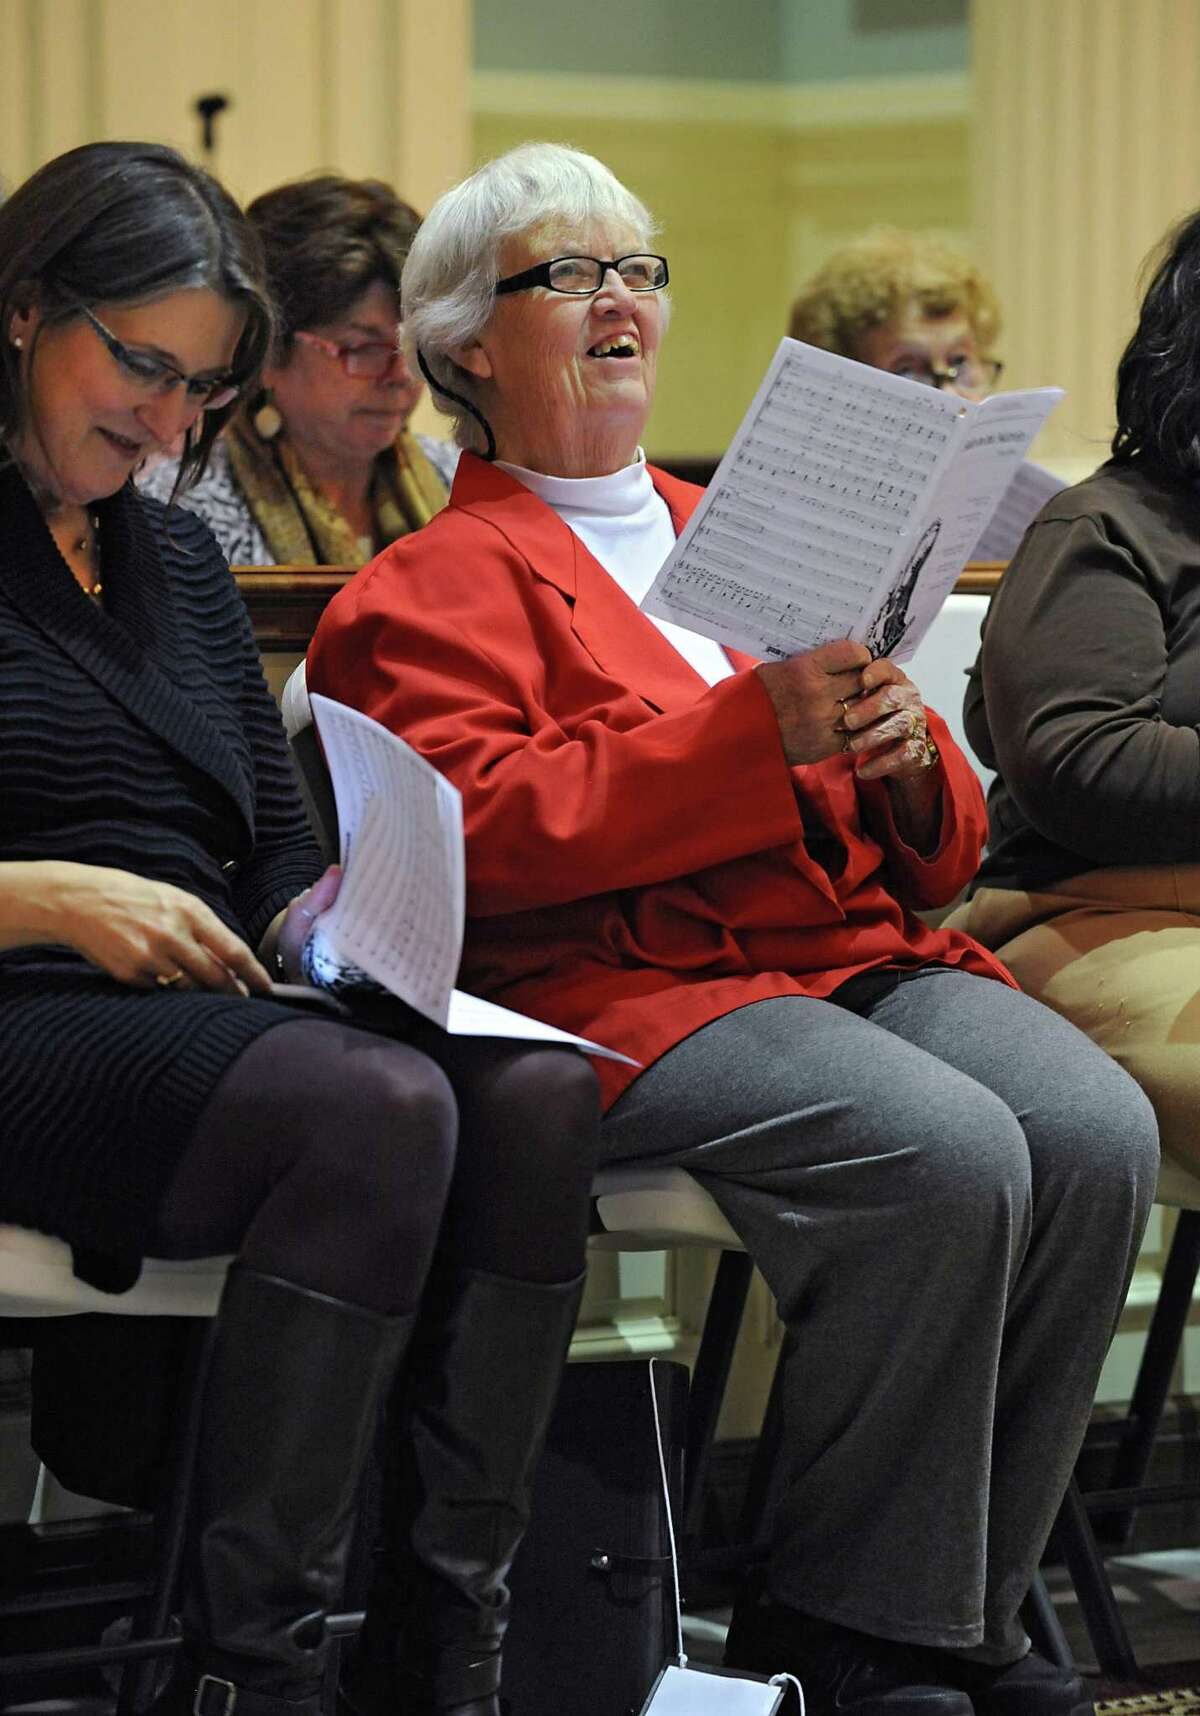 Rita Labrum, center, rehearses with the Festival Celebration Choir at First Lutheran Church on Monday, Nov. 16, 2015 in Albany, N.Y. (Lori Van Buren / Times Union)